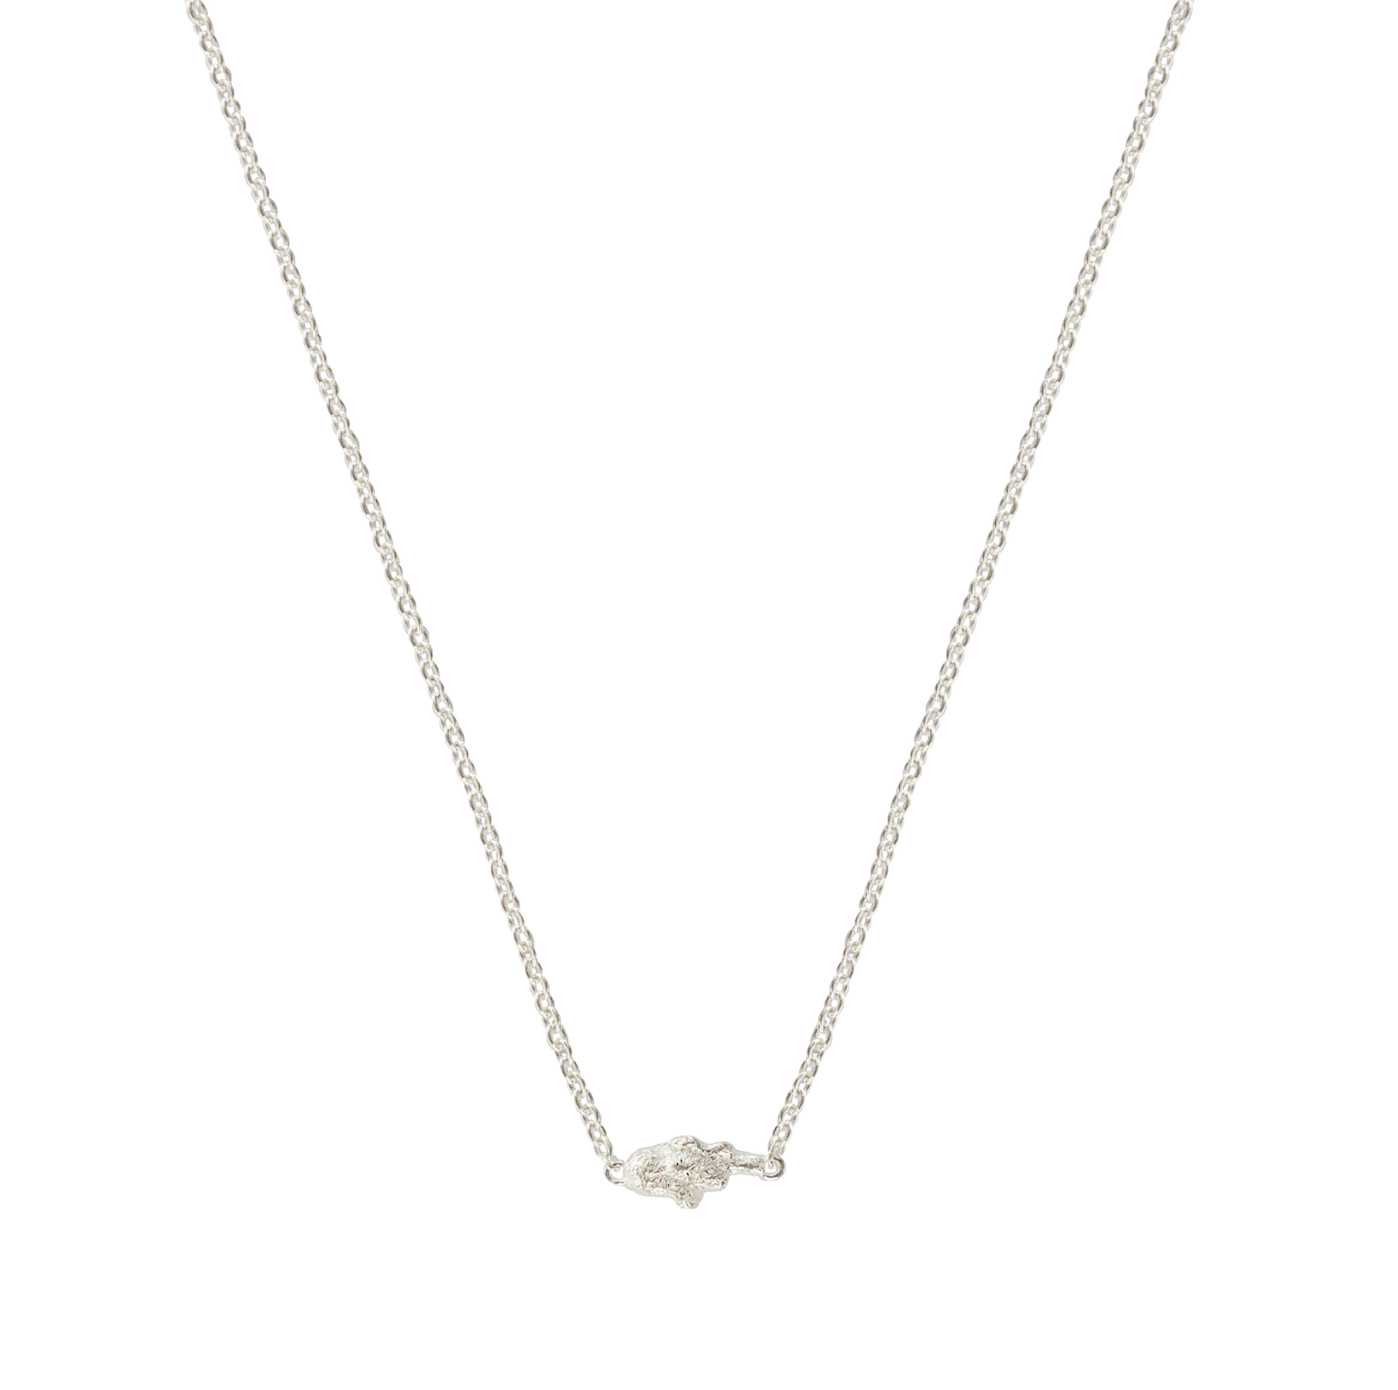 RAUK NECKLACE SILVER